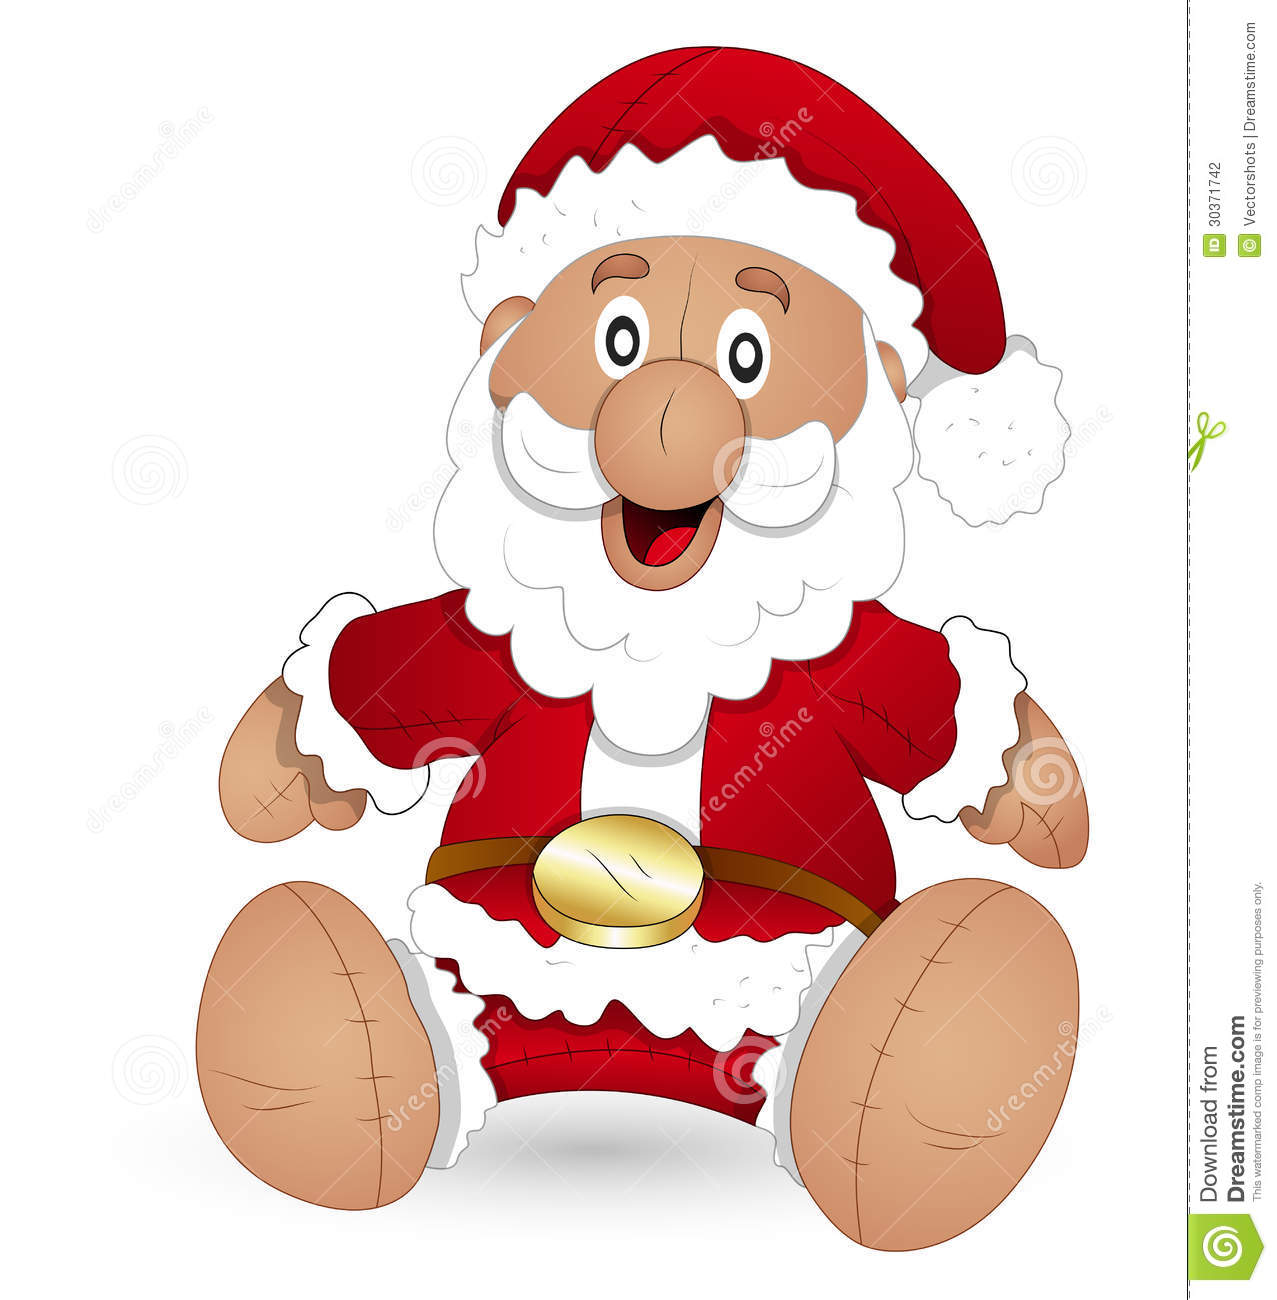 Christmas Toys Cartoon : Cartoon santa stuffed toy christmas vector illustration